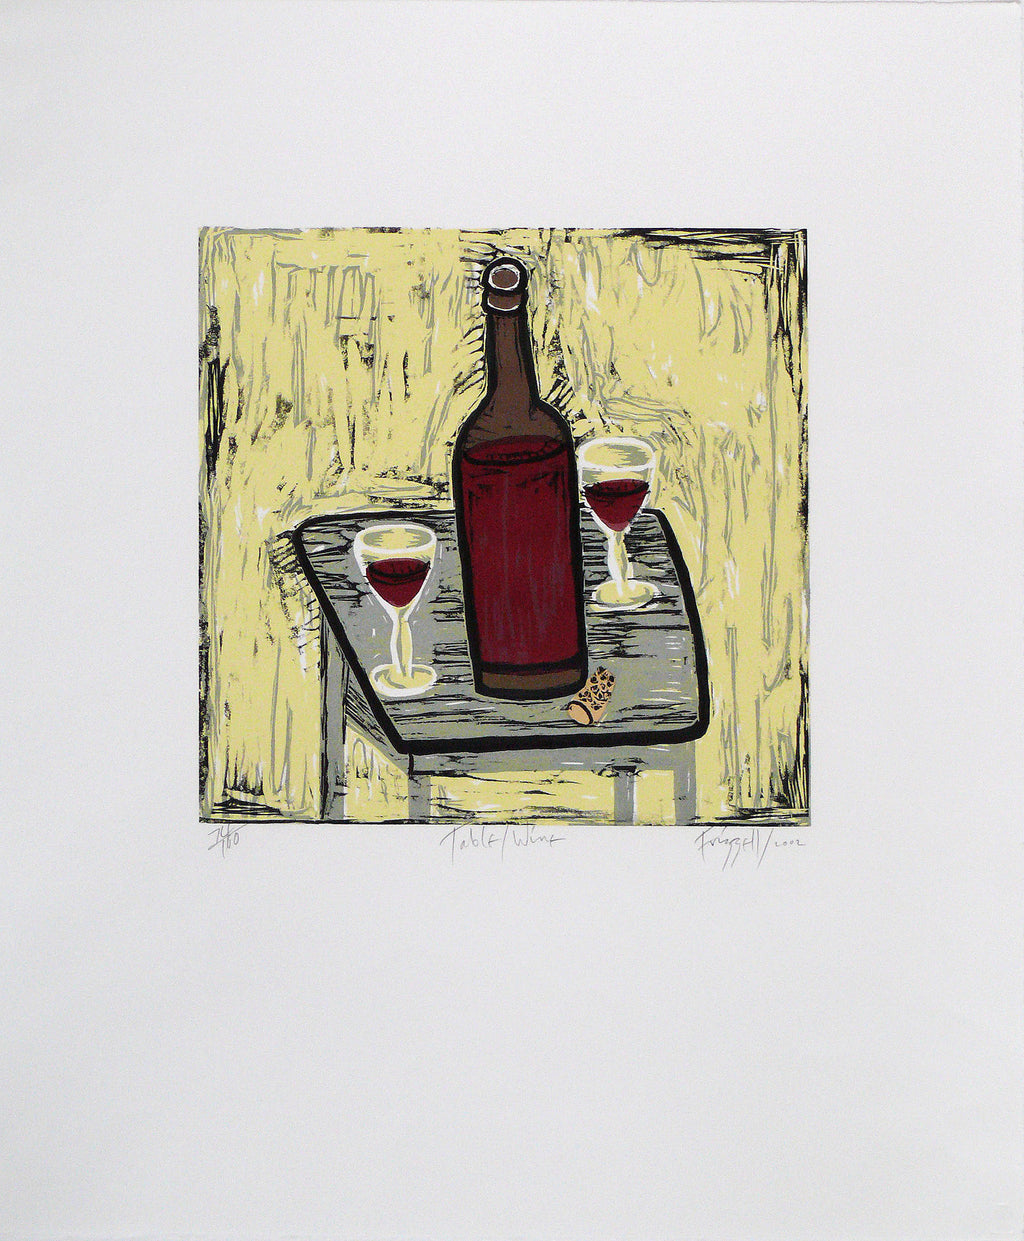 Frizzell_2002_Table Wine_woodcut on paper_600 x 510mm_aFRI430-02